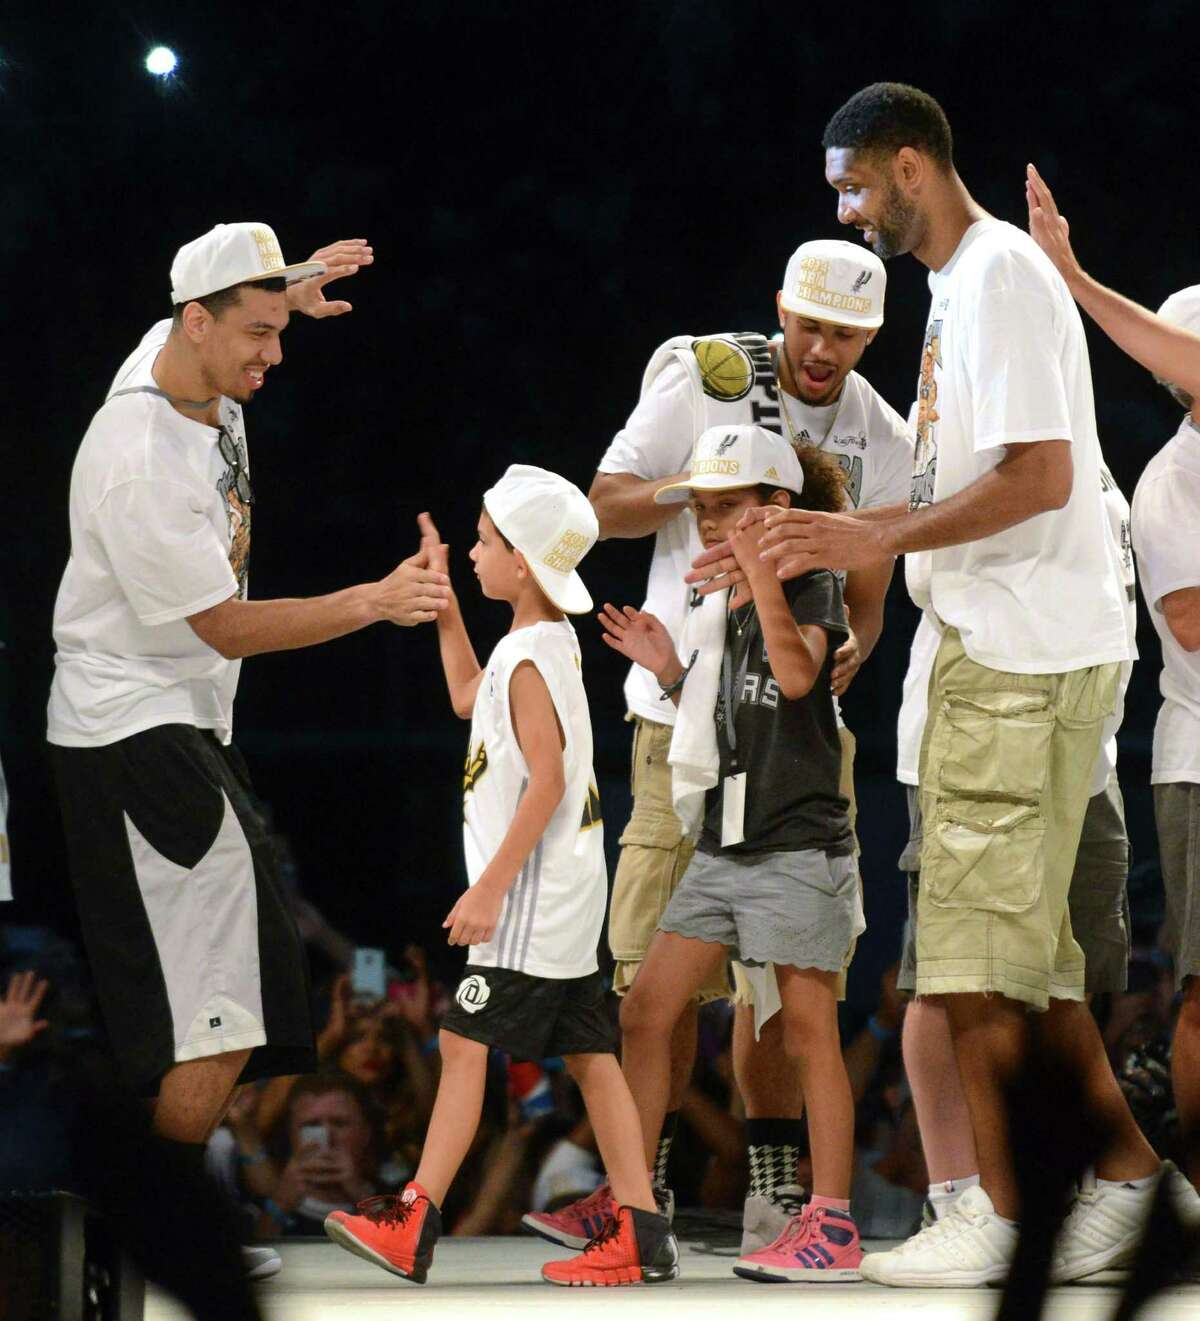 Spurs player Danny Green, left, greets Tim Duncan and his children, Draven and Sydney, during a celebration of the Spurs fifth NBA championship on Wednesday, June 18, 2014, in the Alamodome.